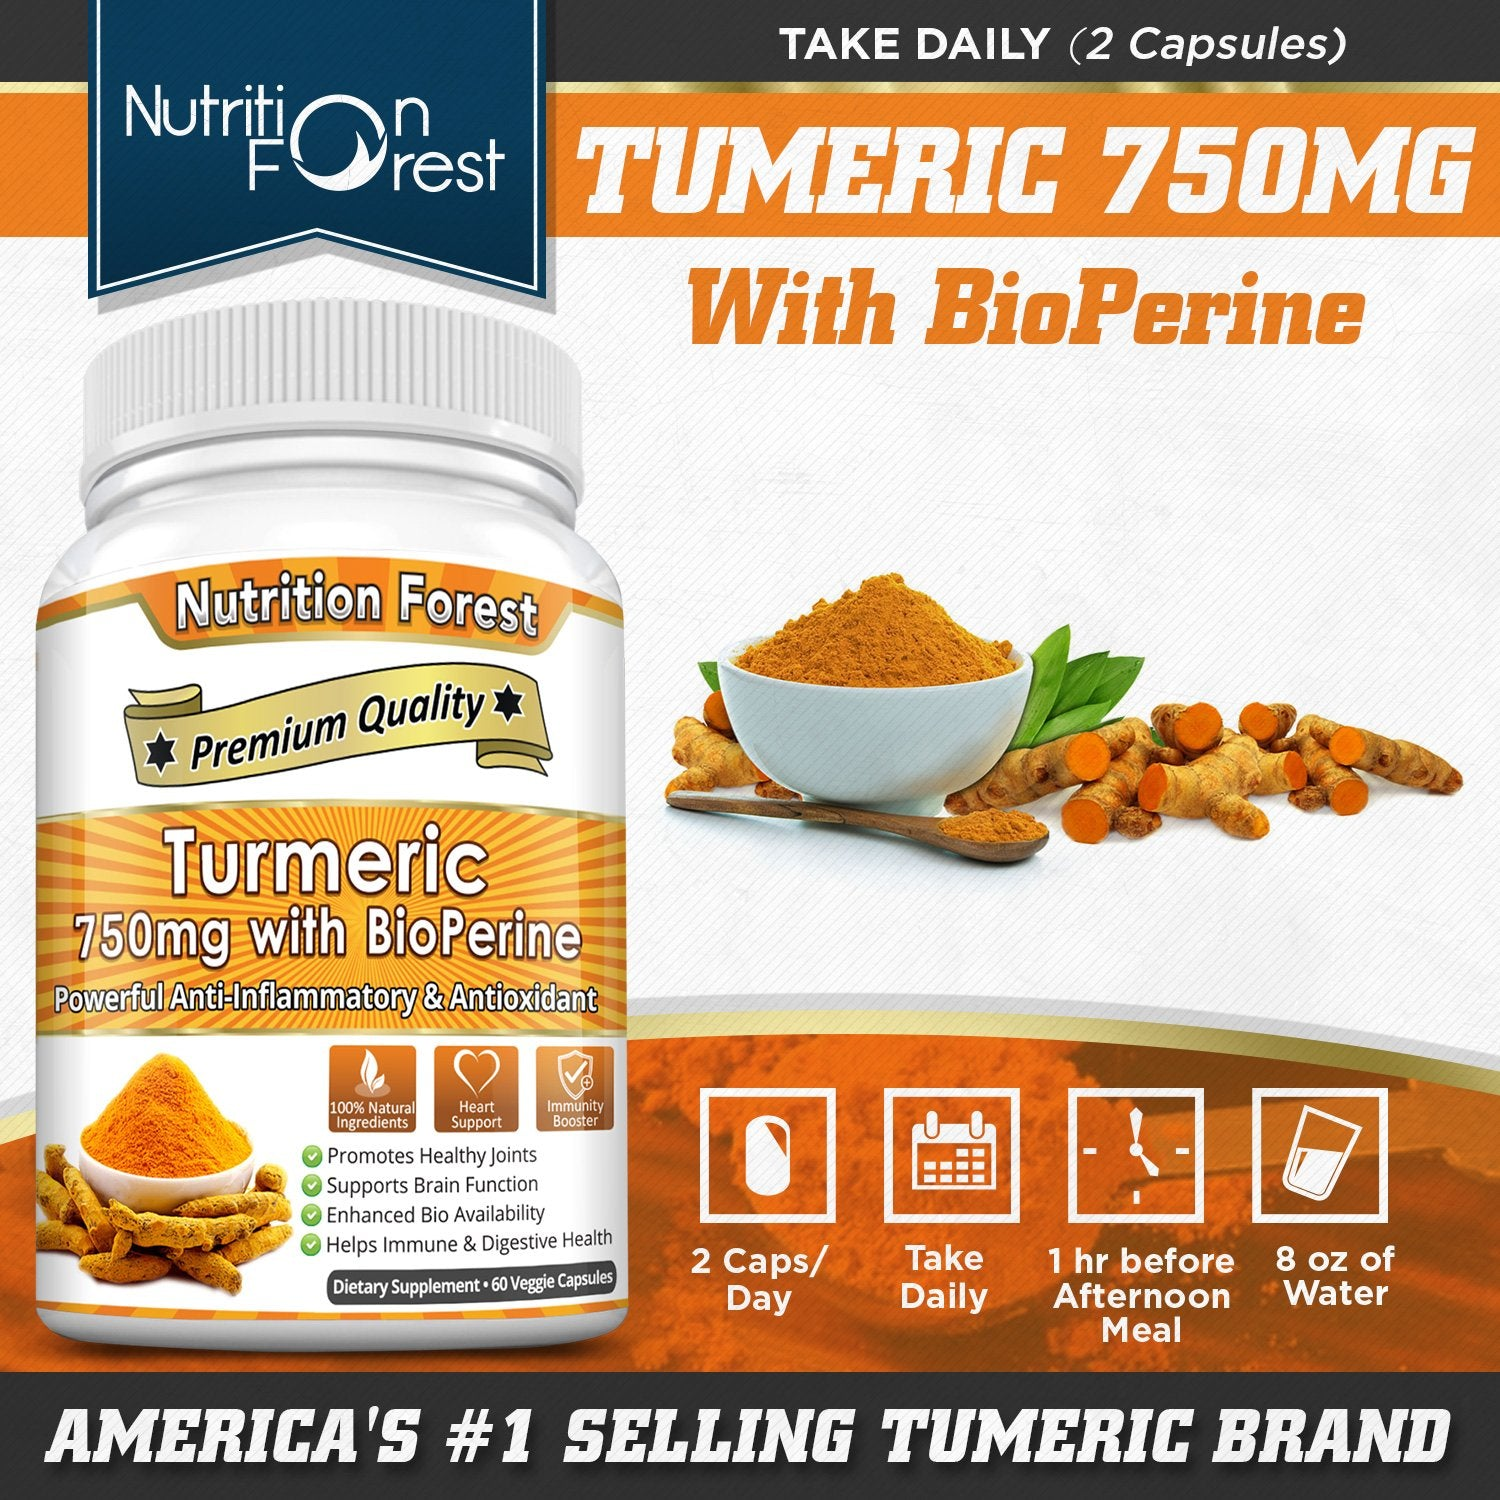 Turmeric Curcumin 750mg with BioPerine